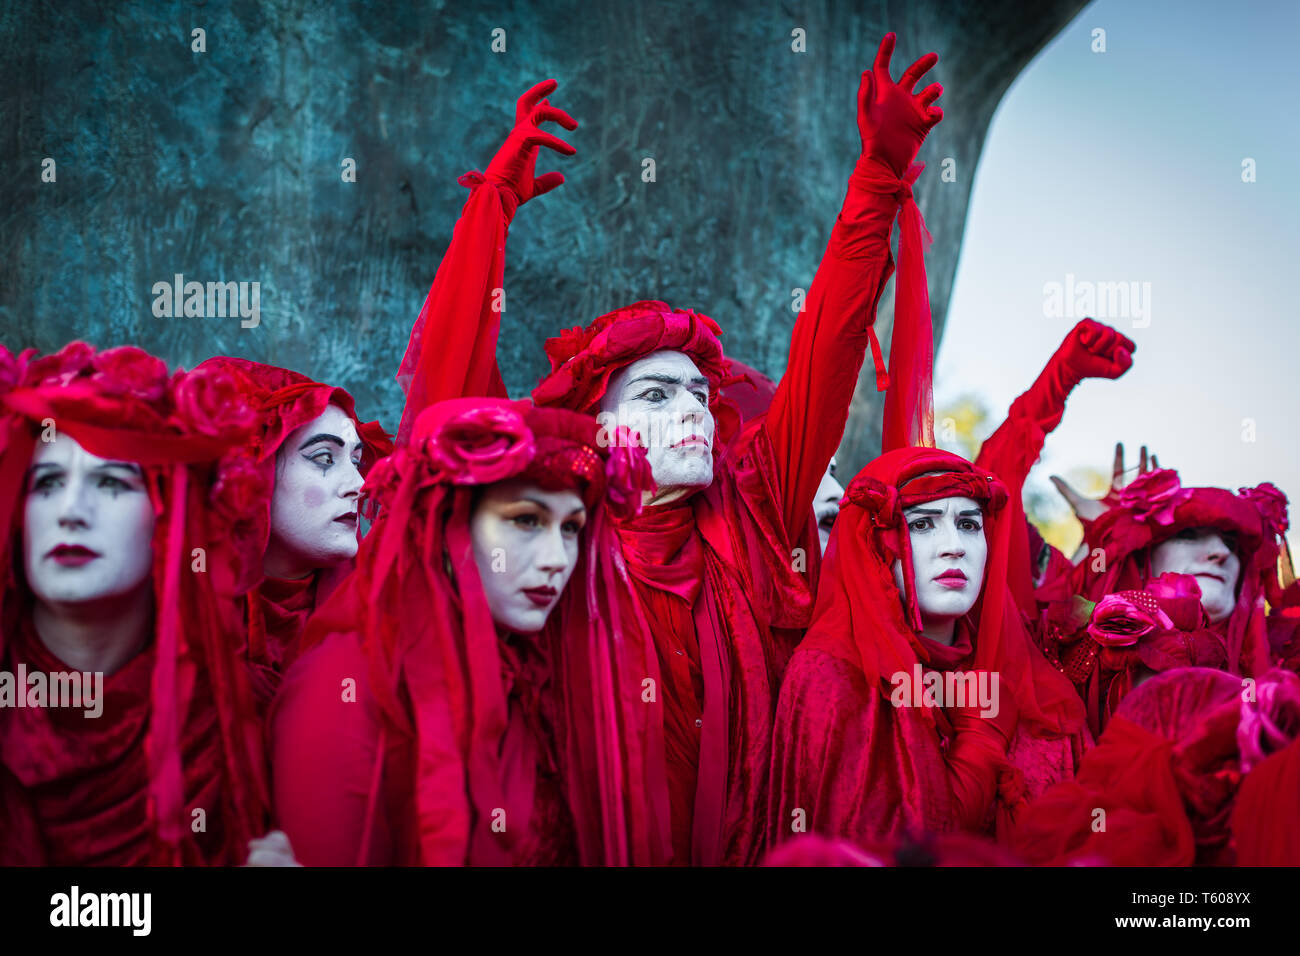 Extinction Rebellion environmental activist group, The Red Brigade seen protesting at Marble Arch on April 25, 2019 in London - Stock Image